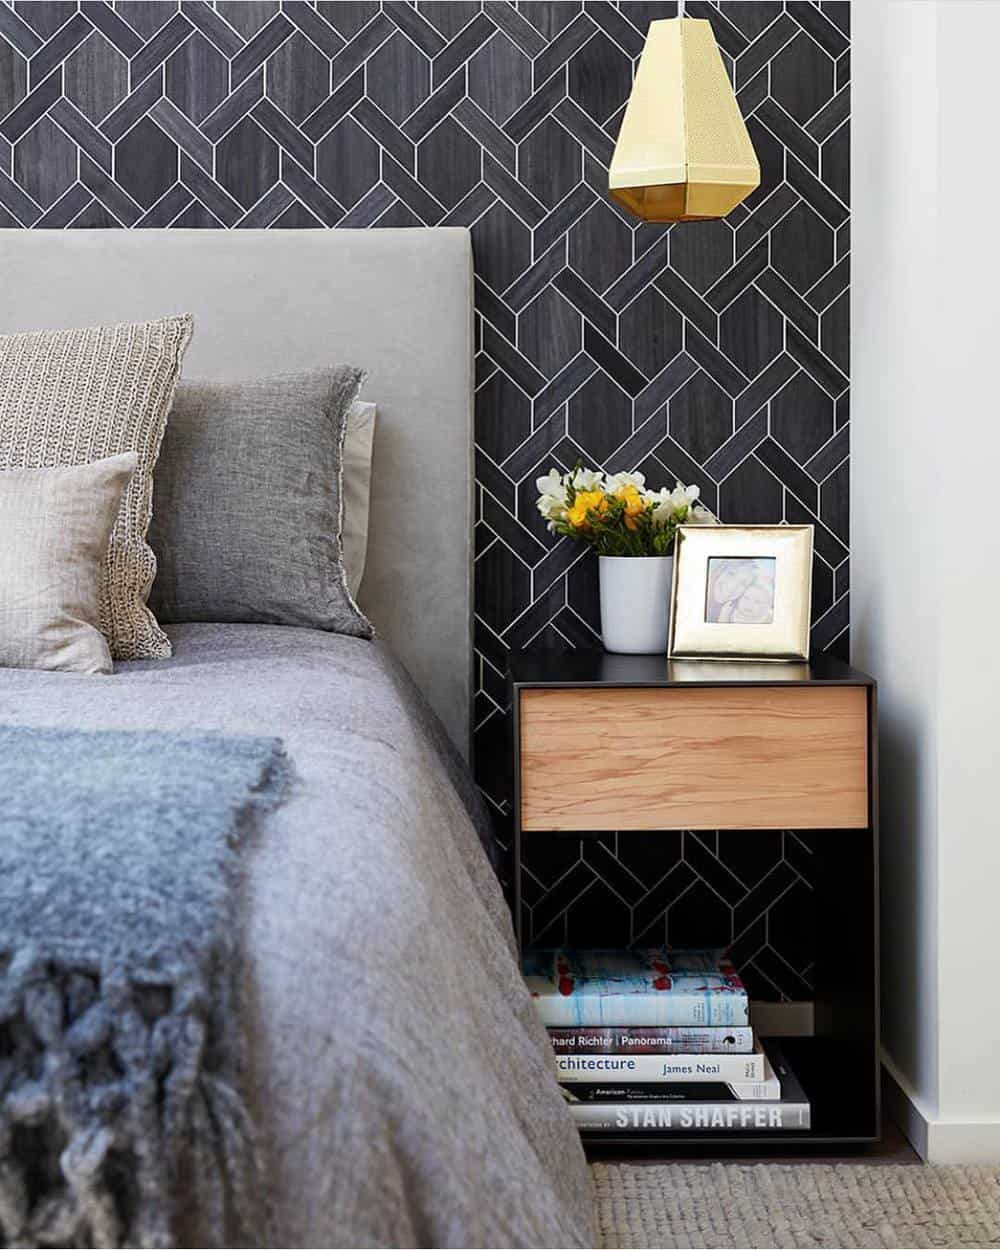 Remodeling Your Master Bedroom With Great Ideas - Wallpaper Option